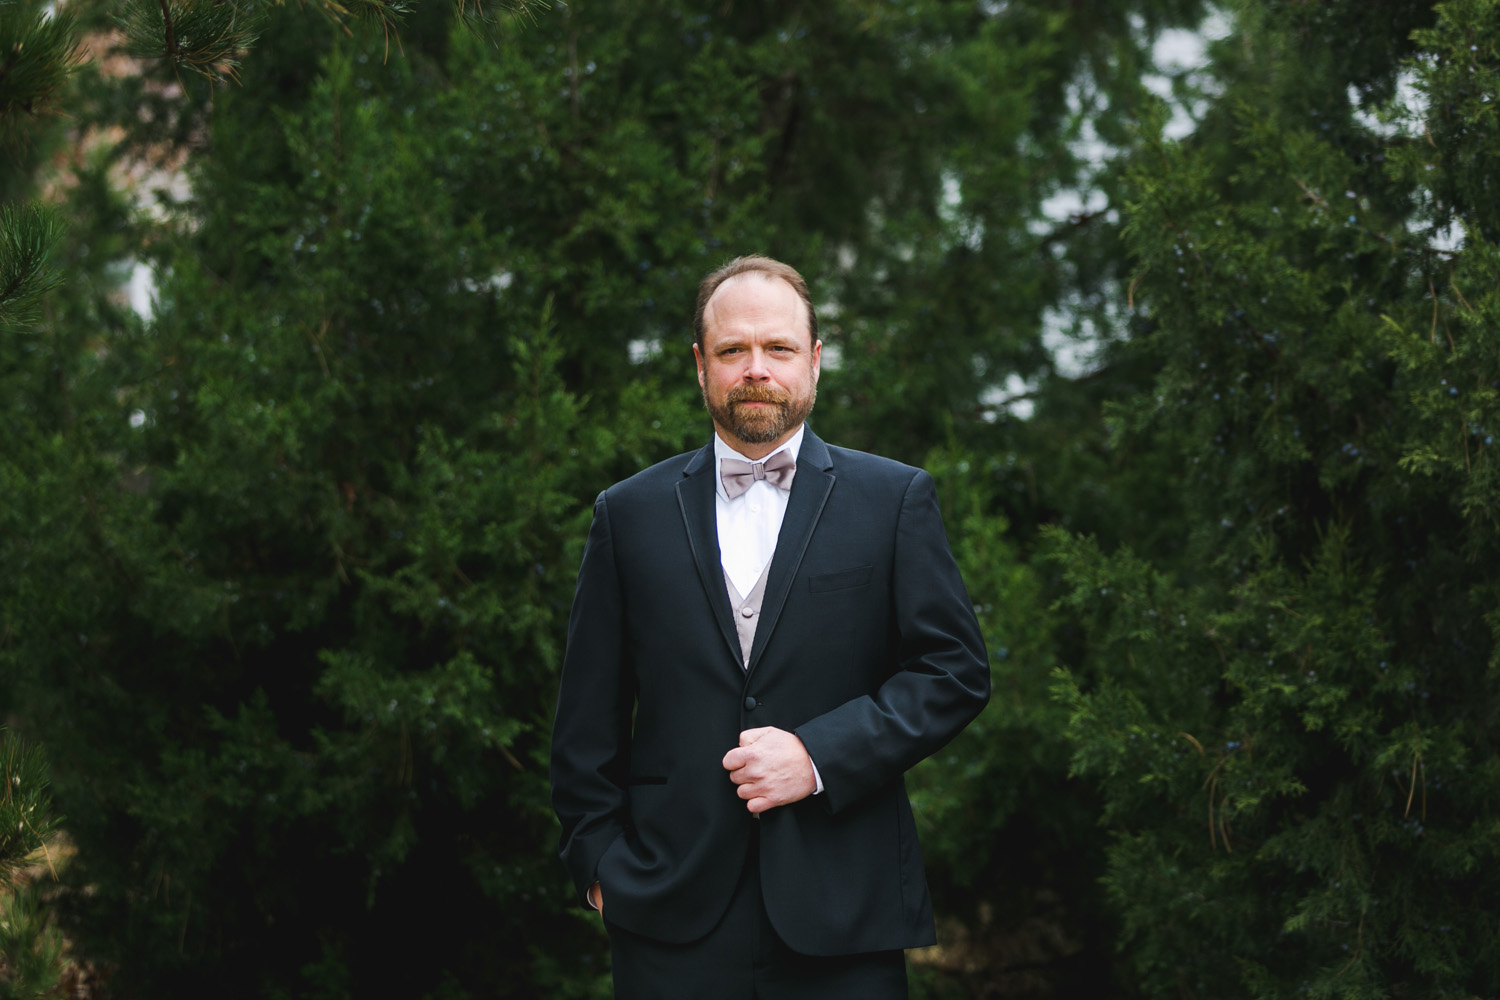 Groom portrait photography Olathe, Kansas. Wedding photographer Renee McDaniel Photography, Manhattan Kansas